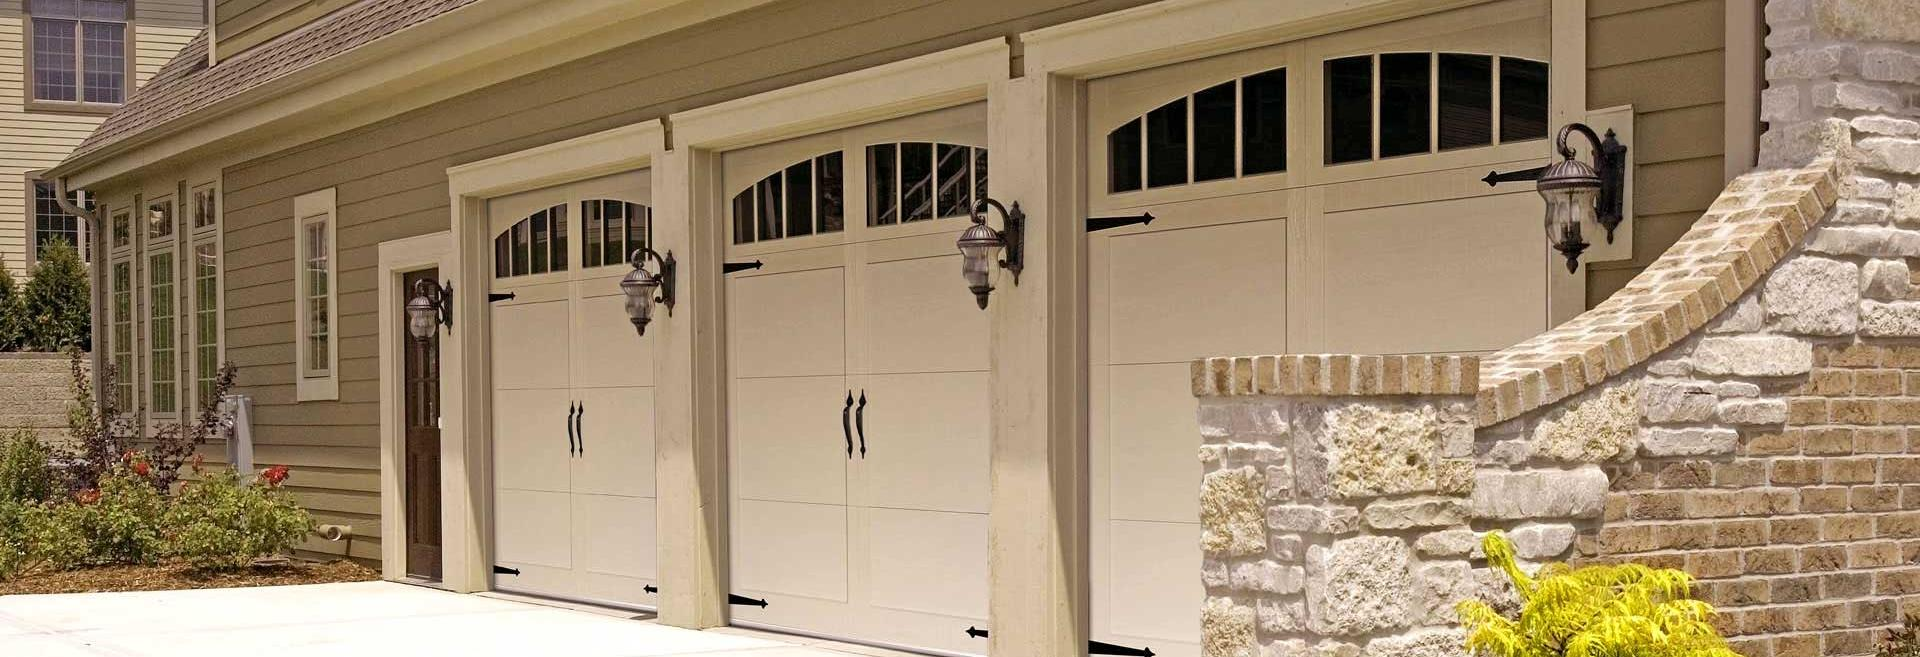 Garage Door Repair Couponsa1 Garage Door Service